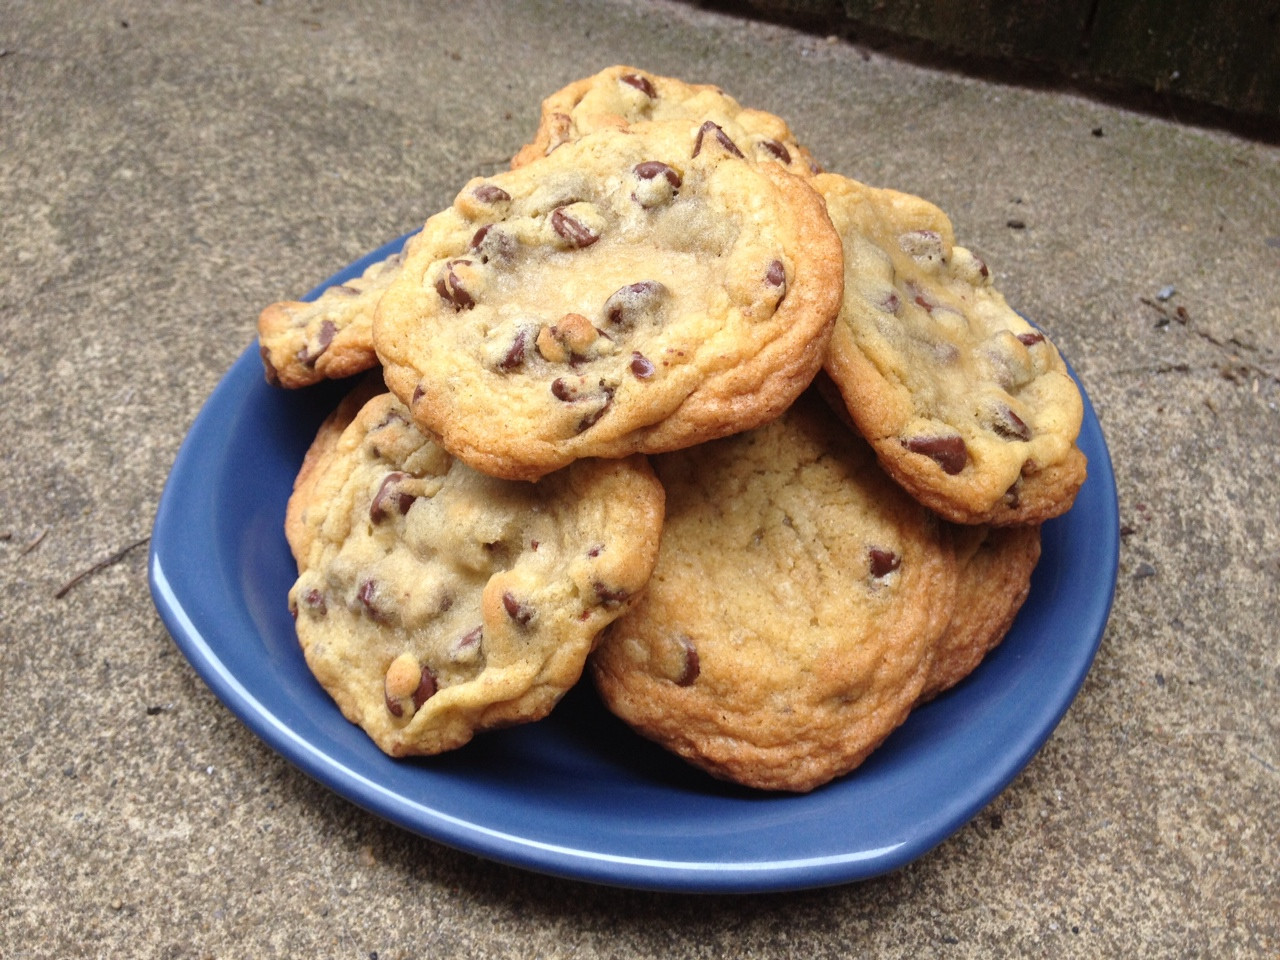 Ghirardelli Chocolate Chip Cookies  A Less Processed Life What s Baking Ghirardelli